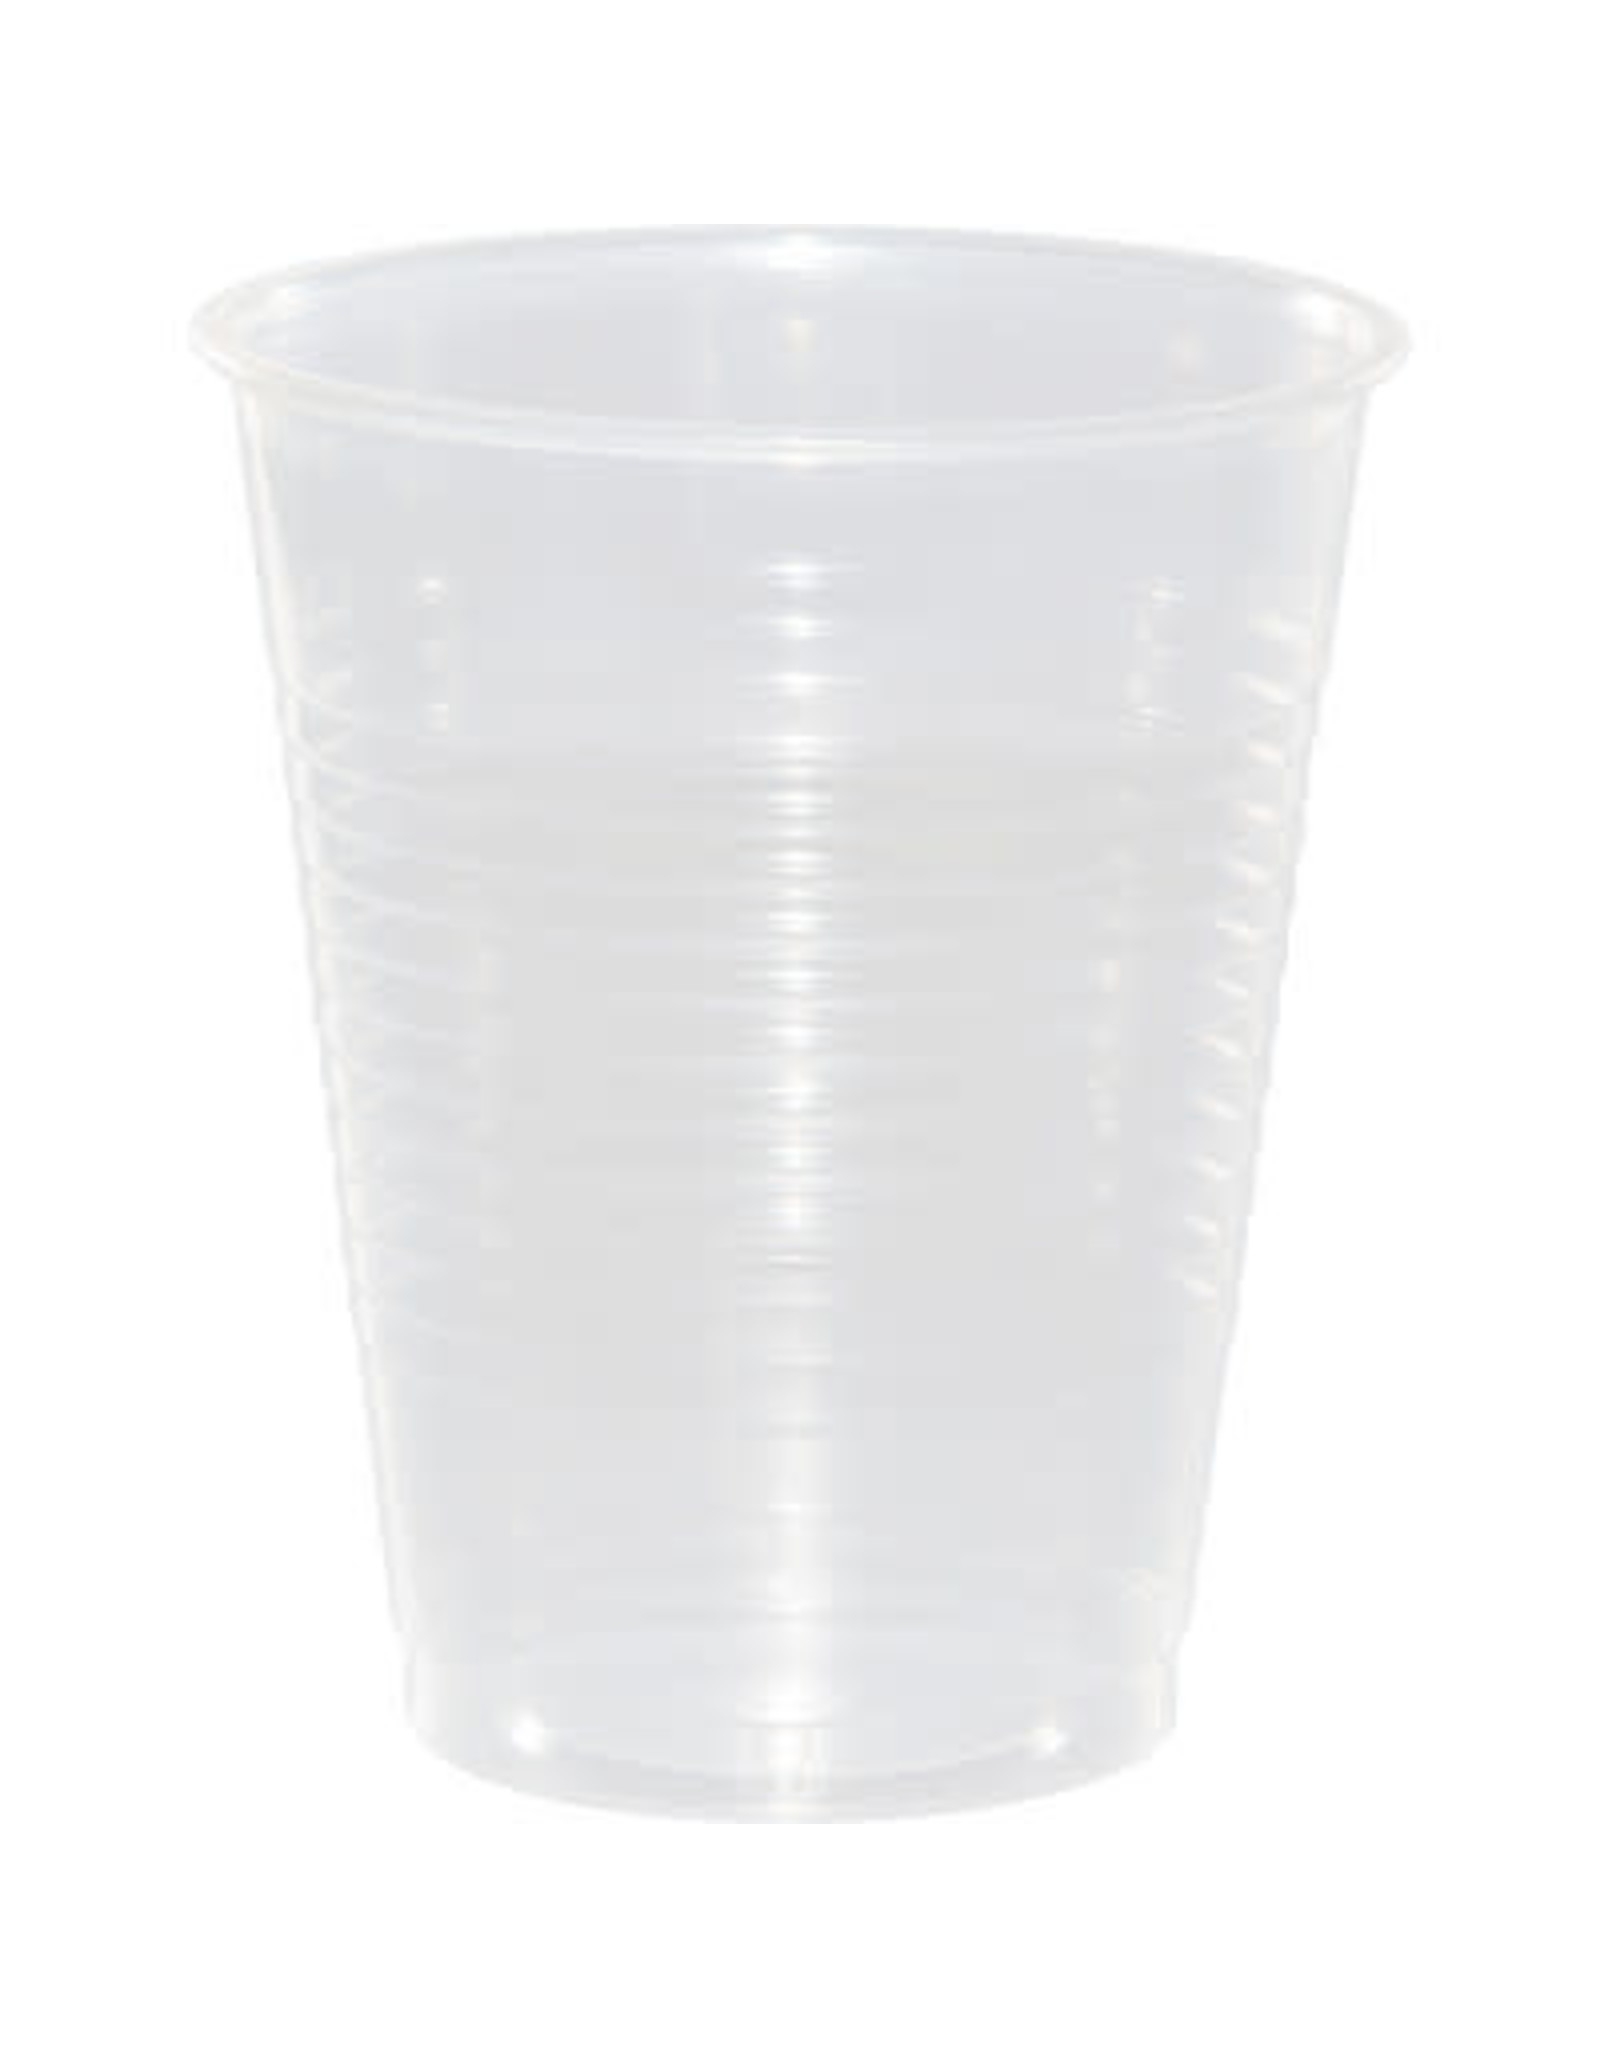 Touch of Color 16oz CLEAR PLASTIC CUPS